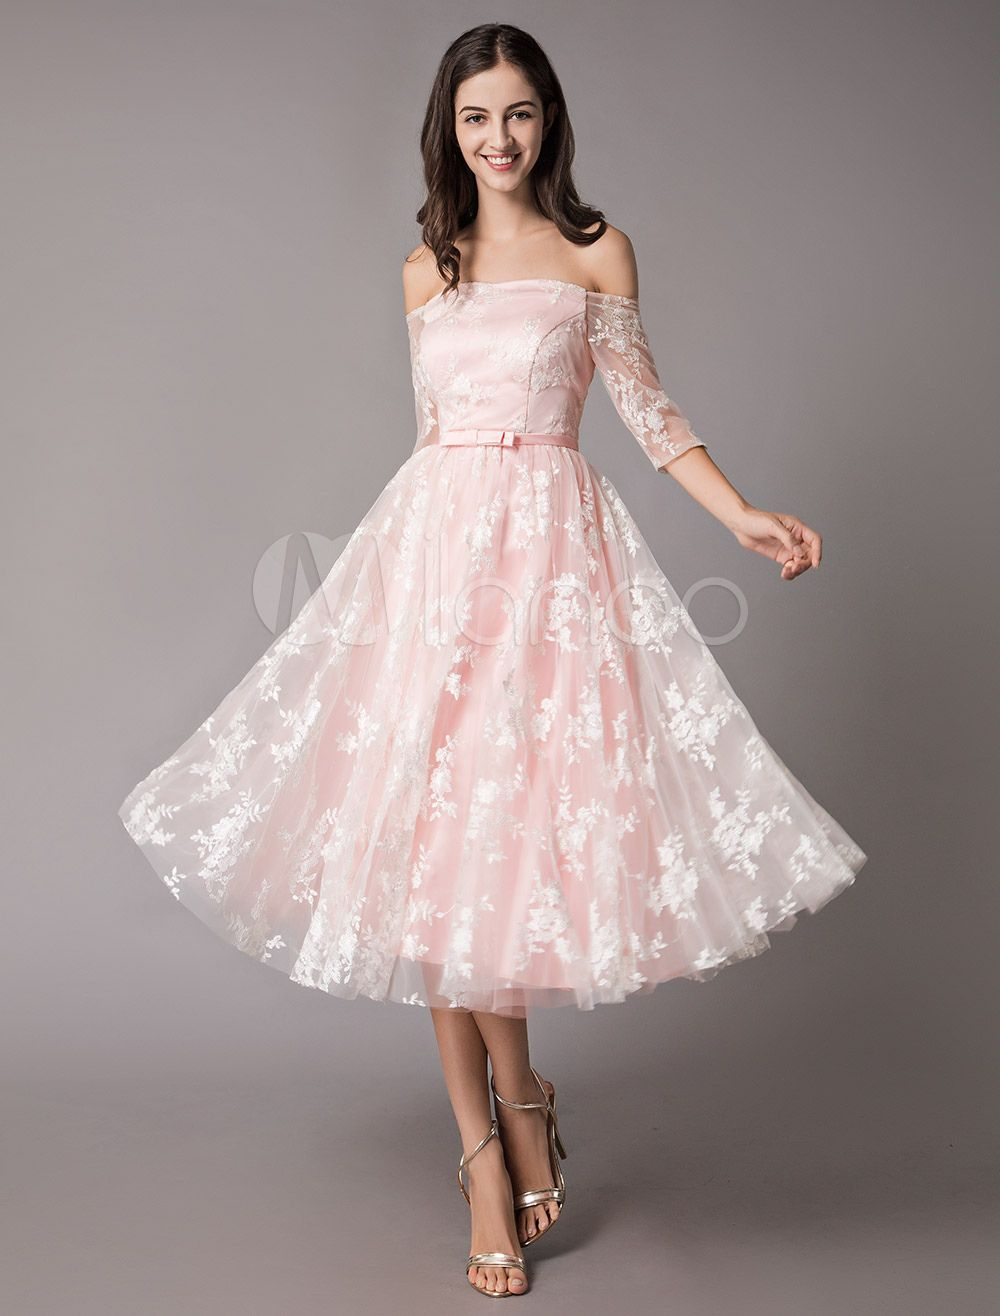 397f4934956 Lace Cocktail Dresses Off The Shoulder Soft Pink Half Sleeve Short Prom  Dress